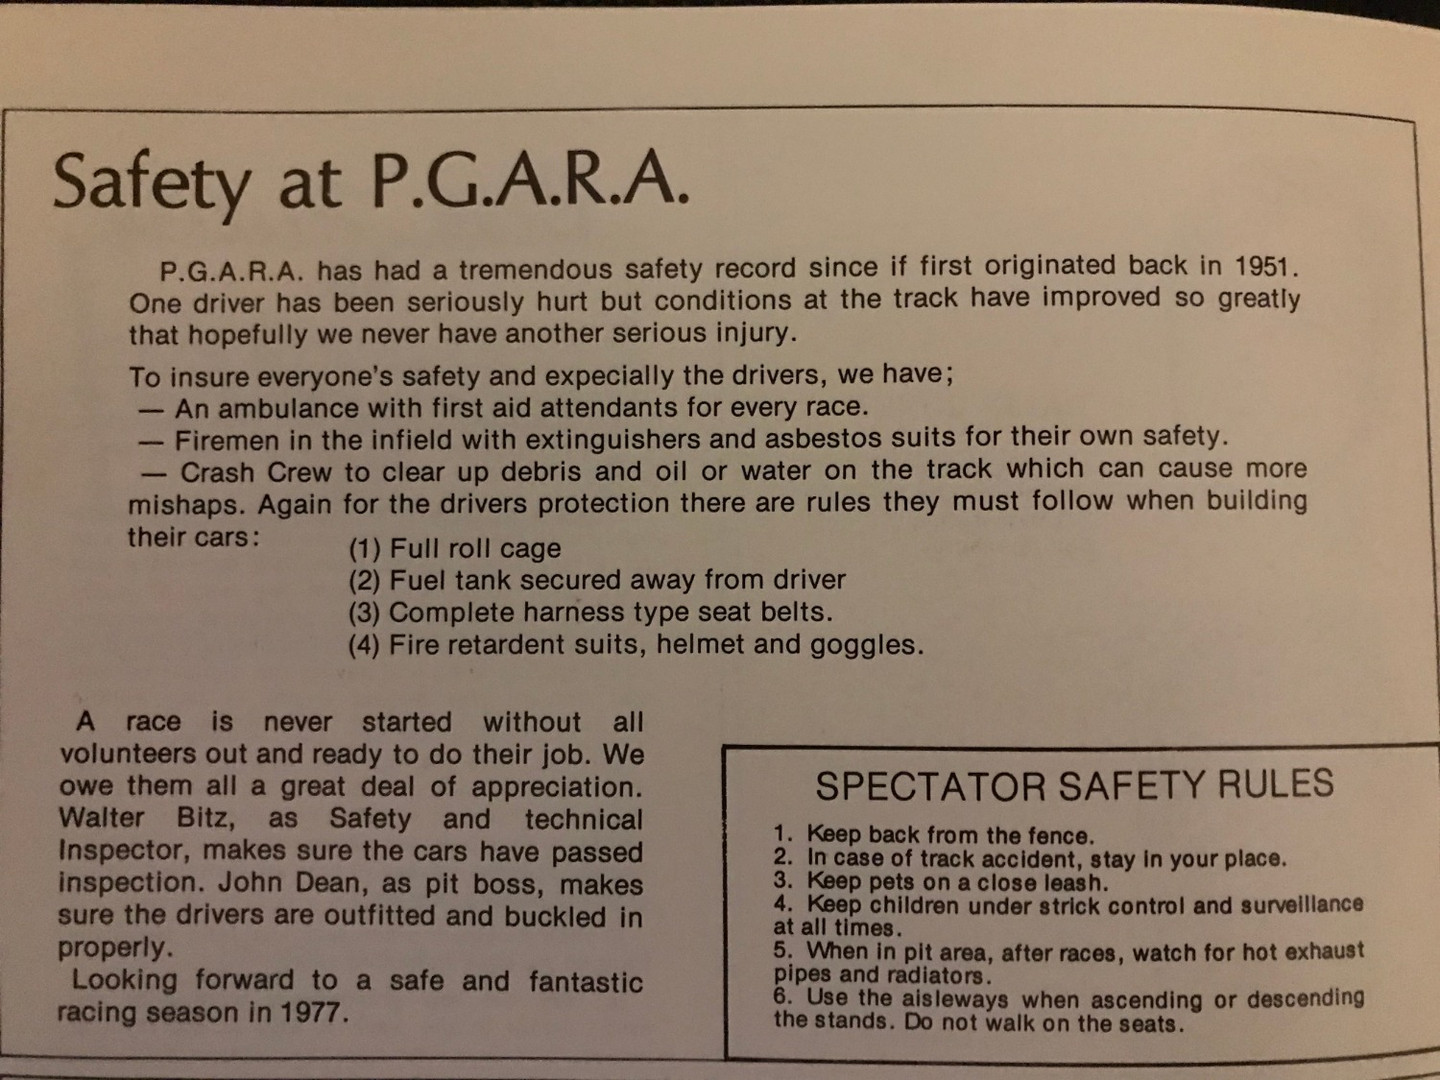 Safety rules, still apply today